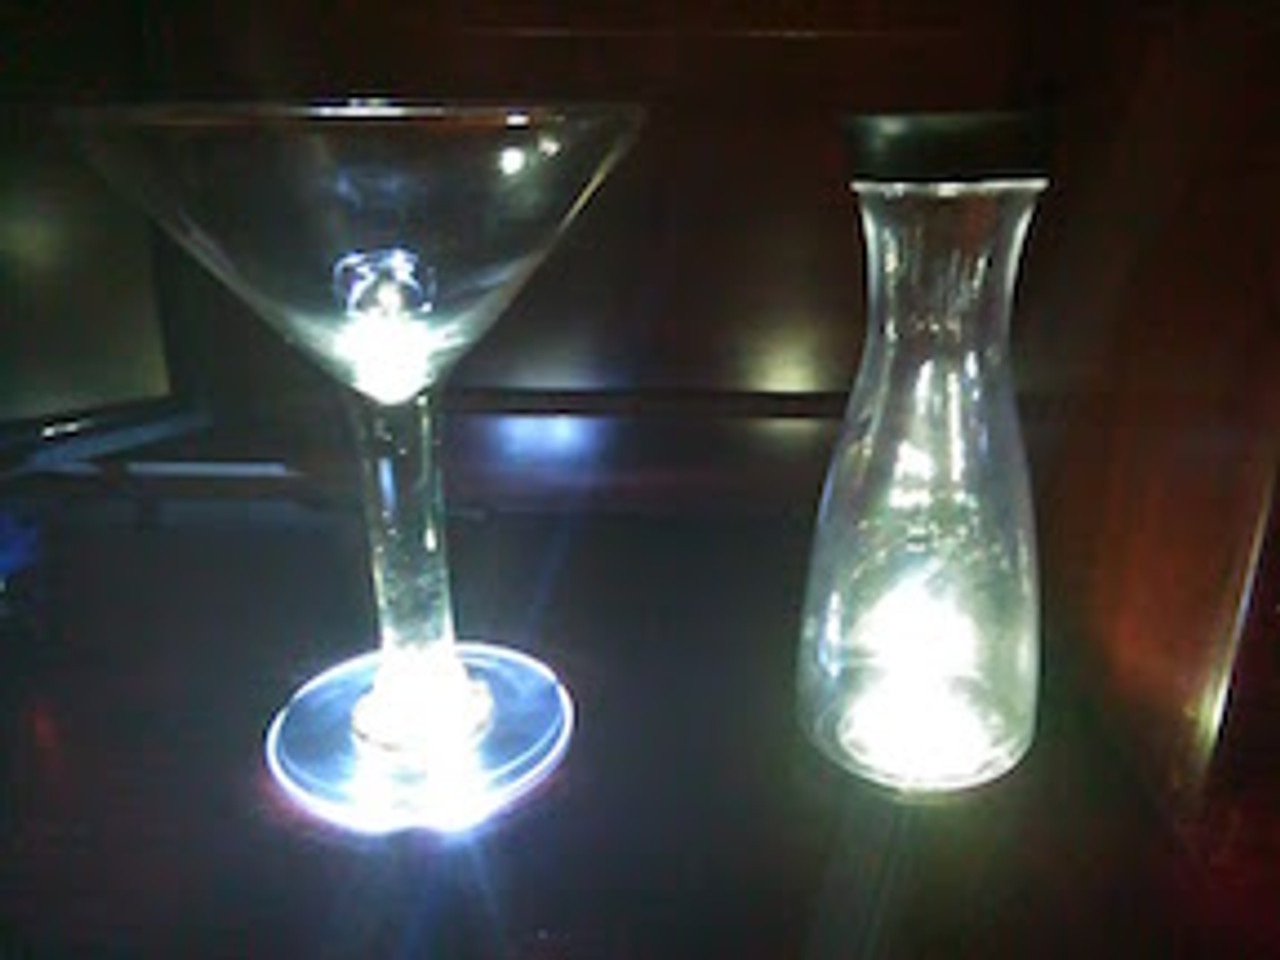 Light-Up-illuminate-Glow-LED-carafet-Mug-Champagne-Martini-Flute-Glass-cup-Glorifier-coaster-Mini-Bottle-Stick-on-coaster